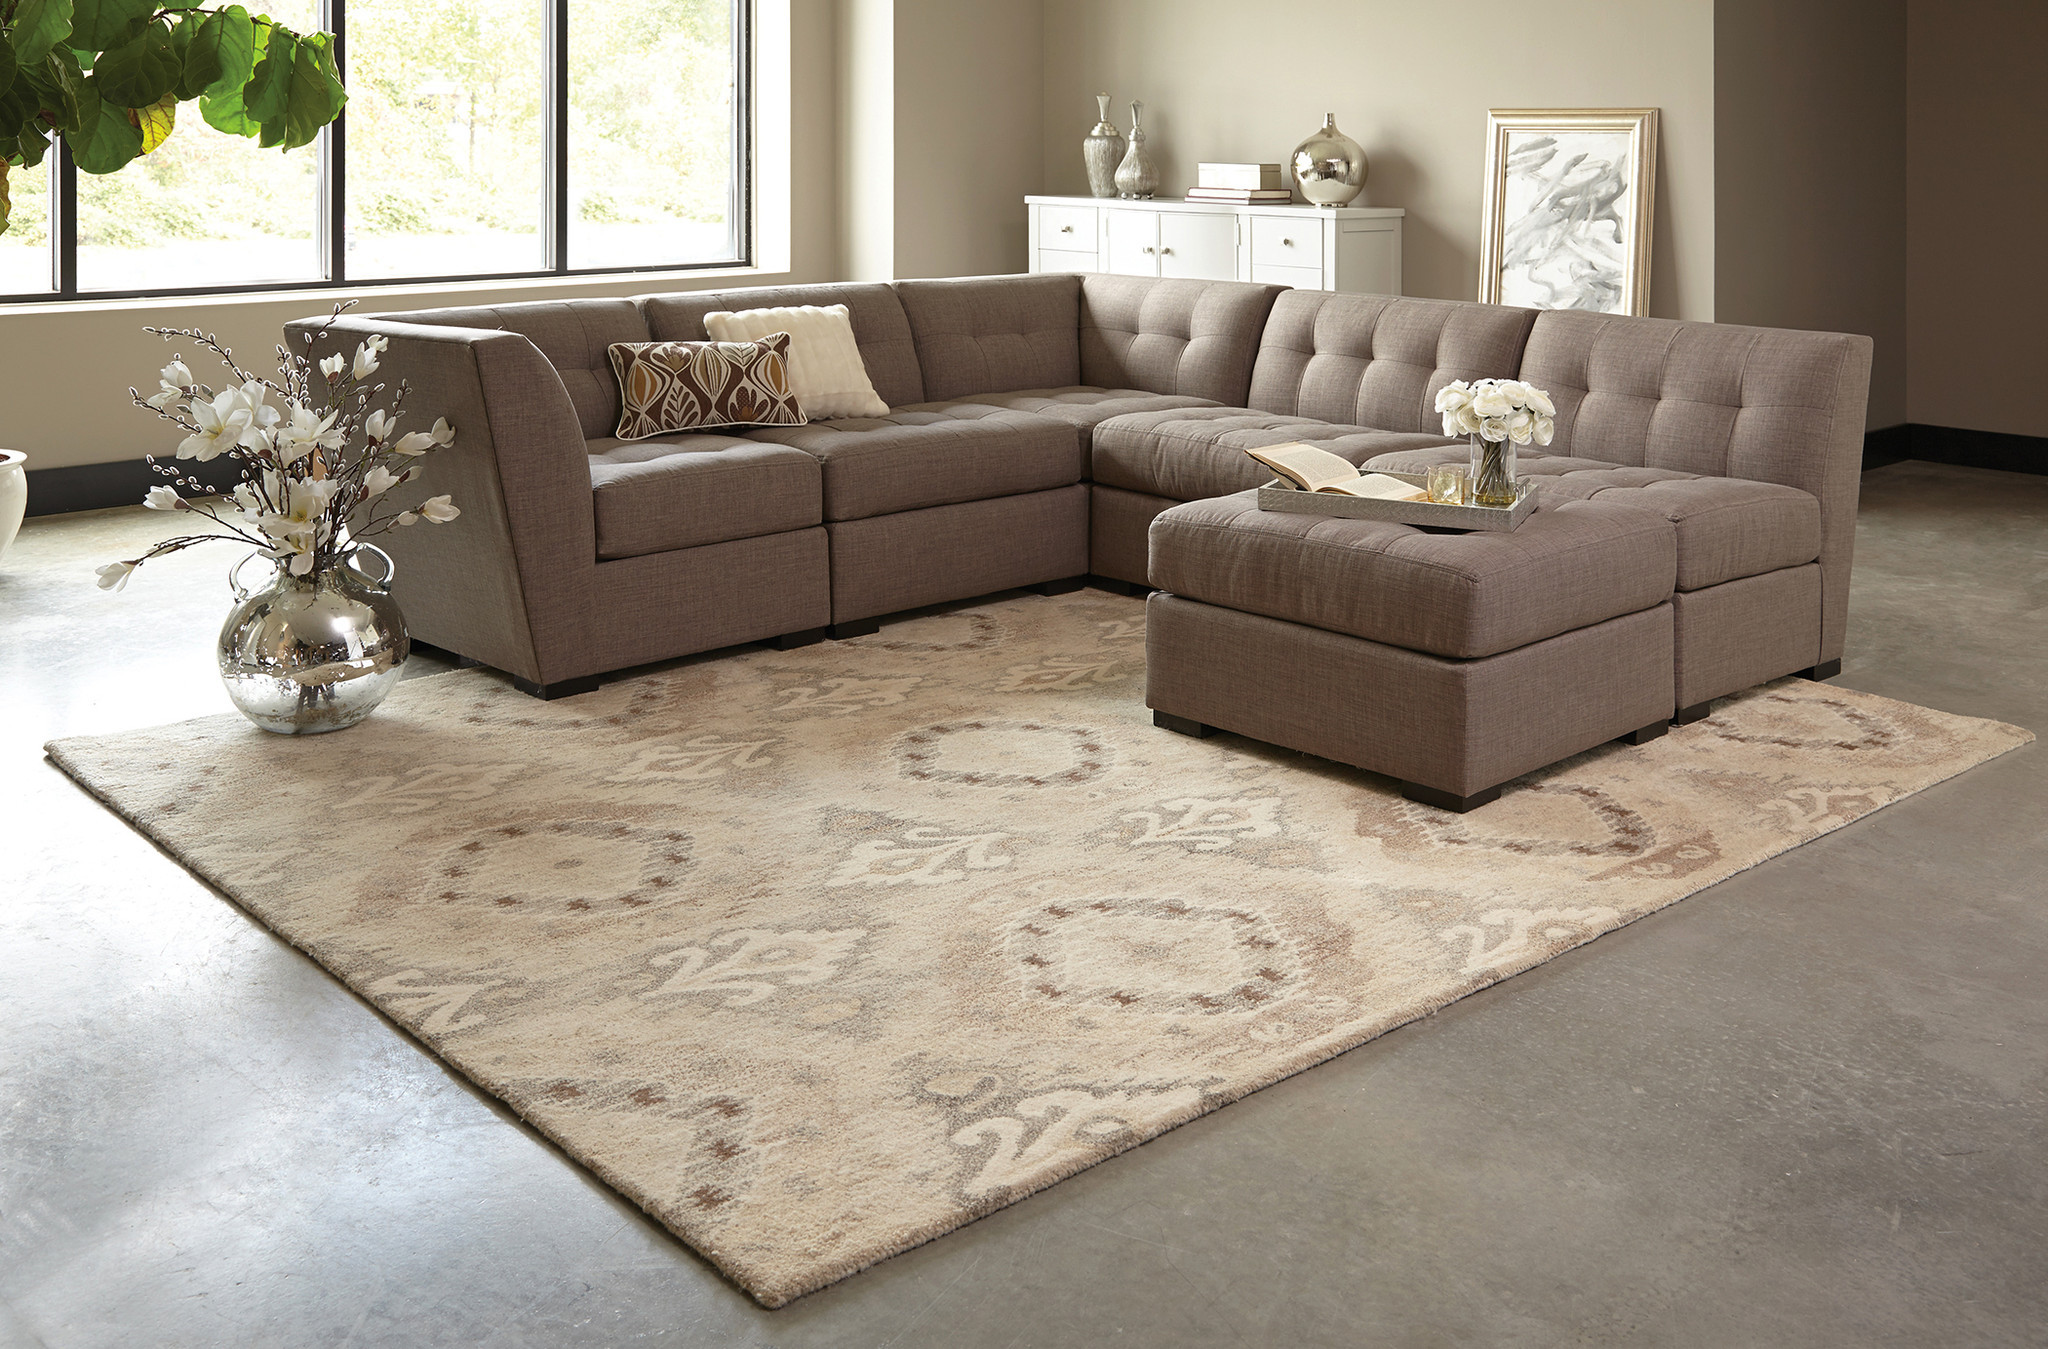 Best ideas about Family Room Area Rugs . Save or Pin Best area Rugs for Living Room 50 s Now.